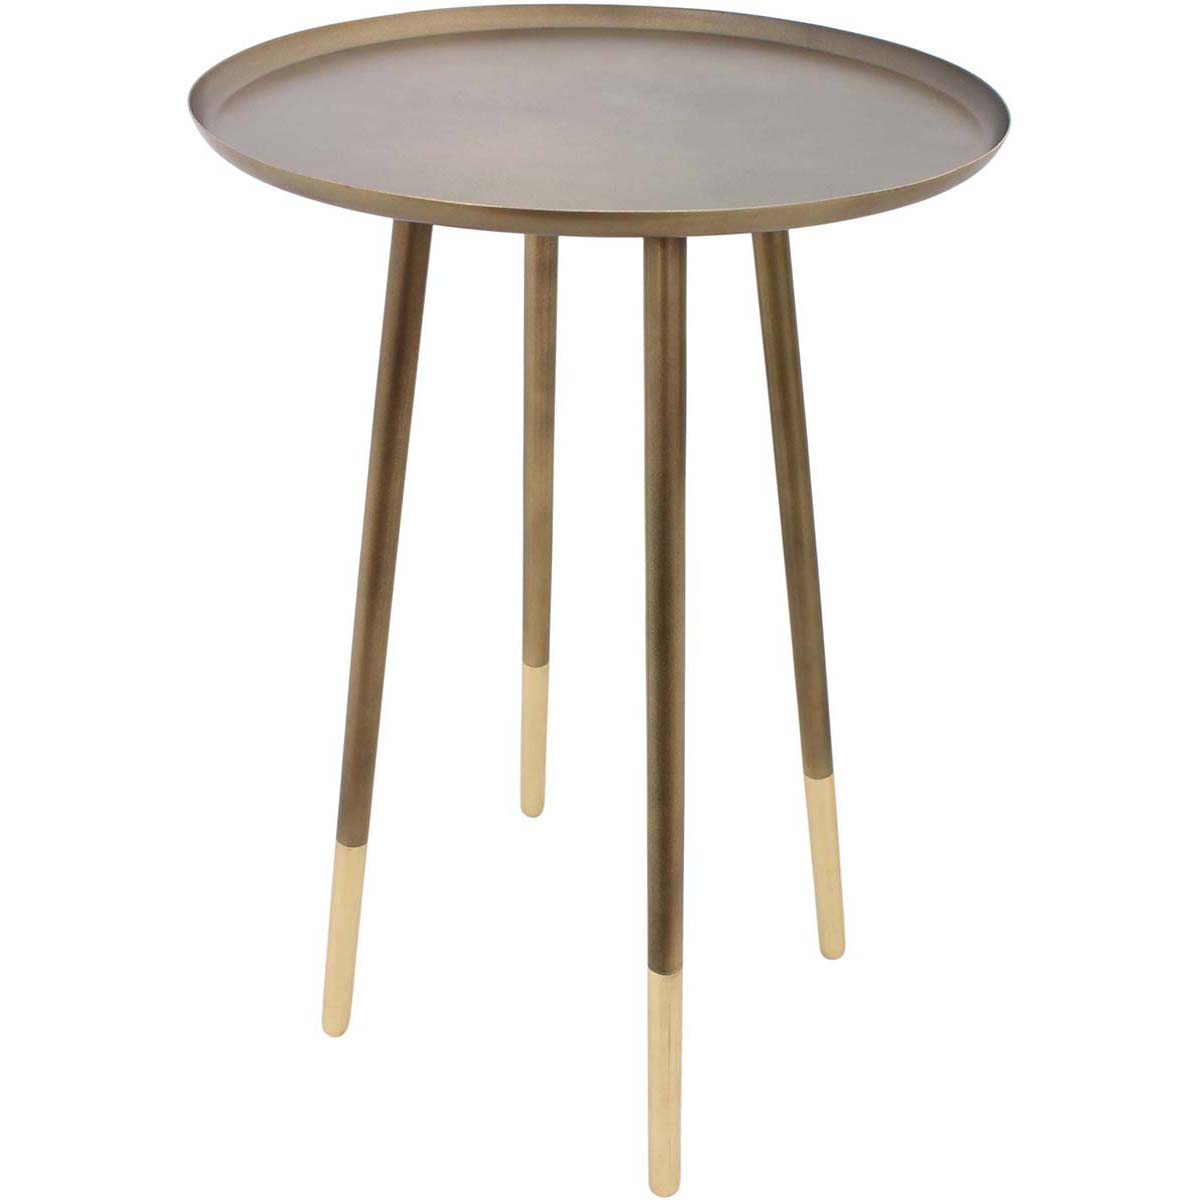 Information about Pawn Accent Table Product Photo